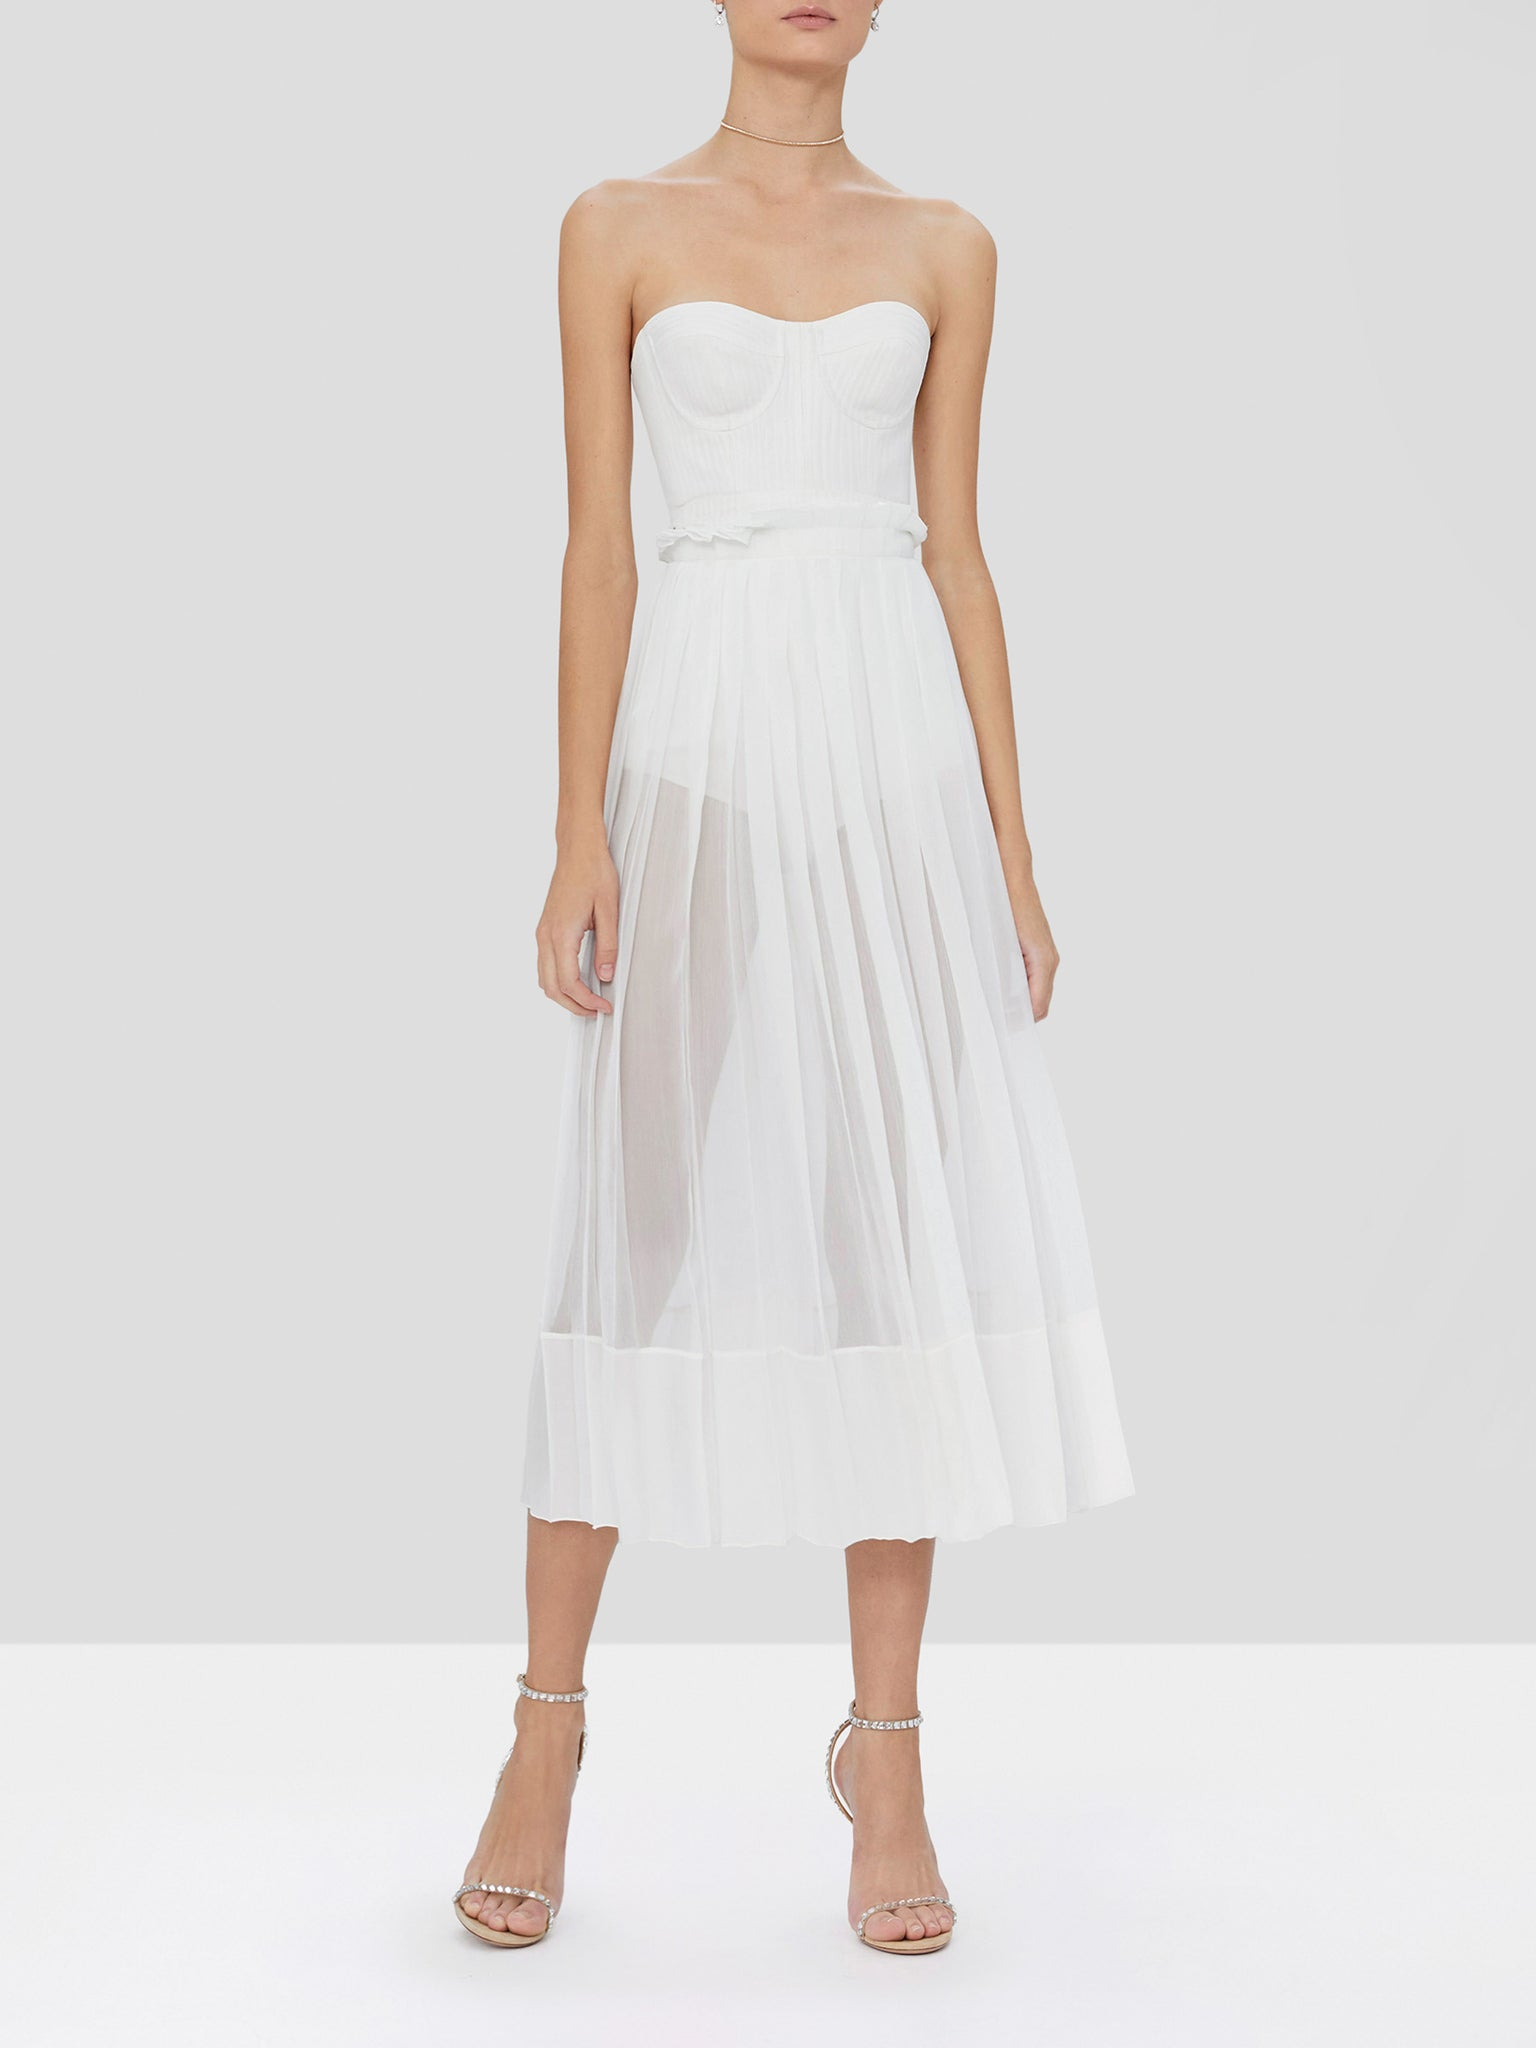 inasia dress in off white